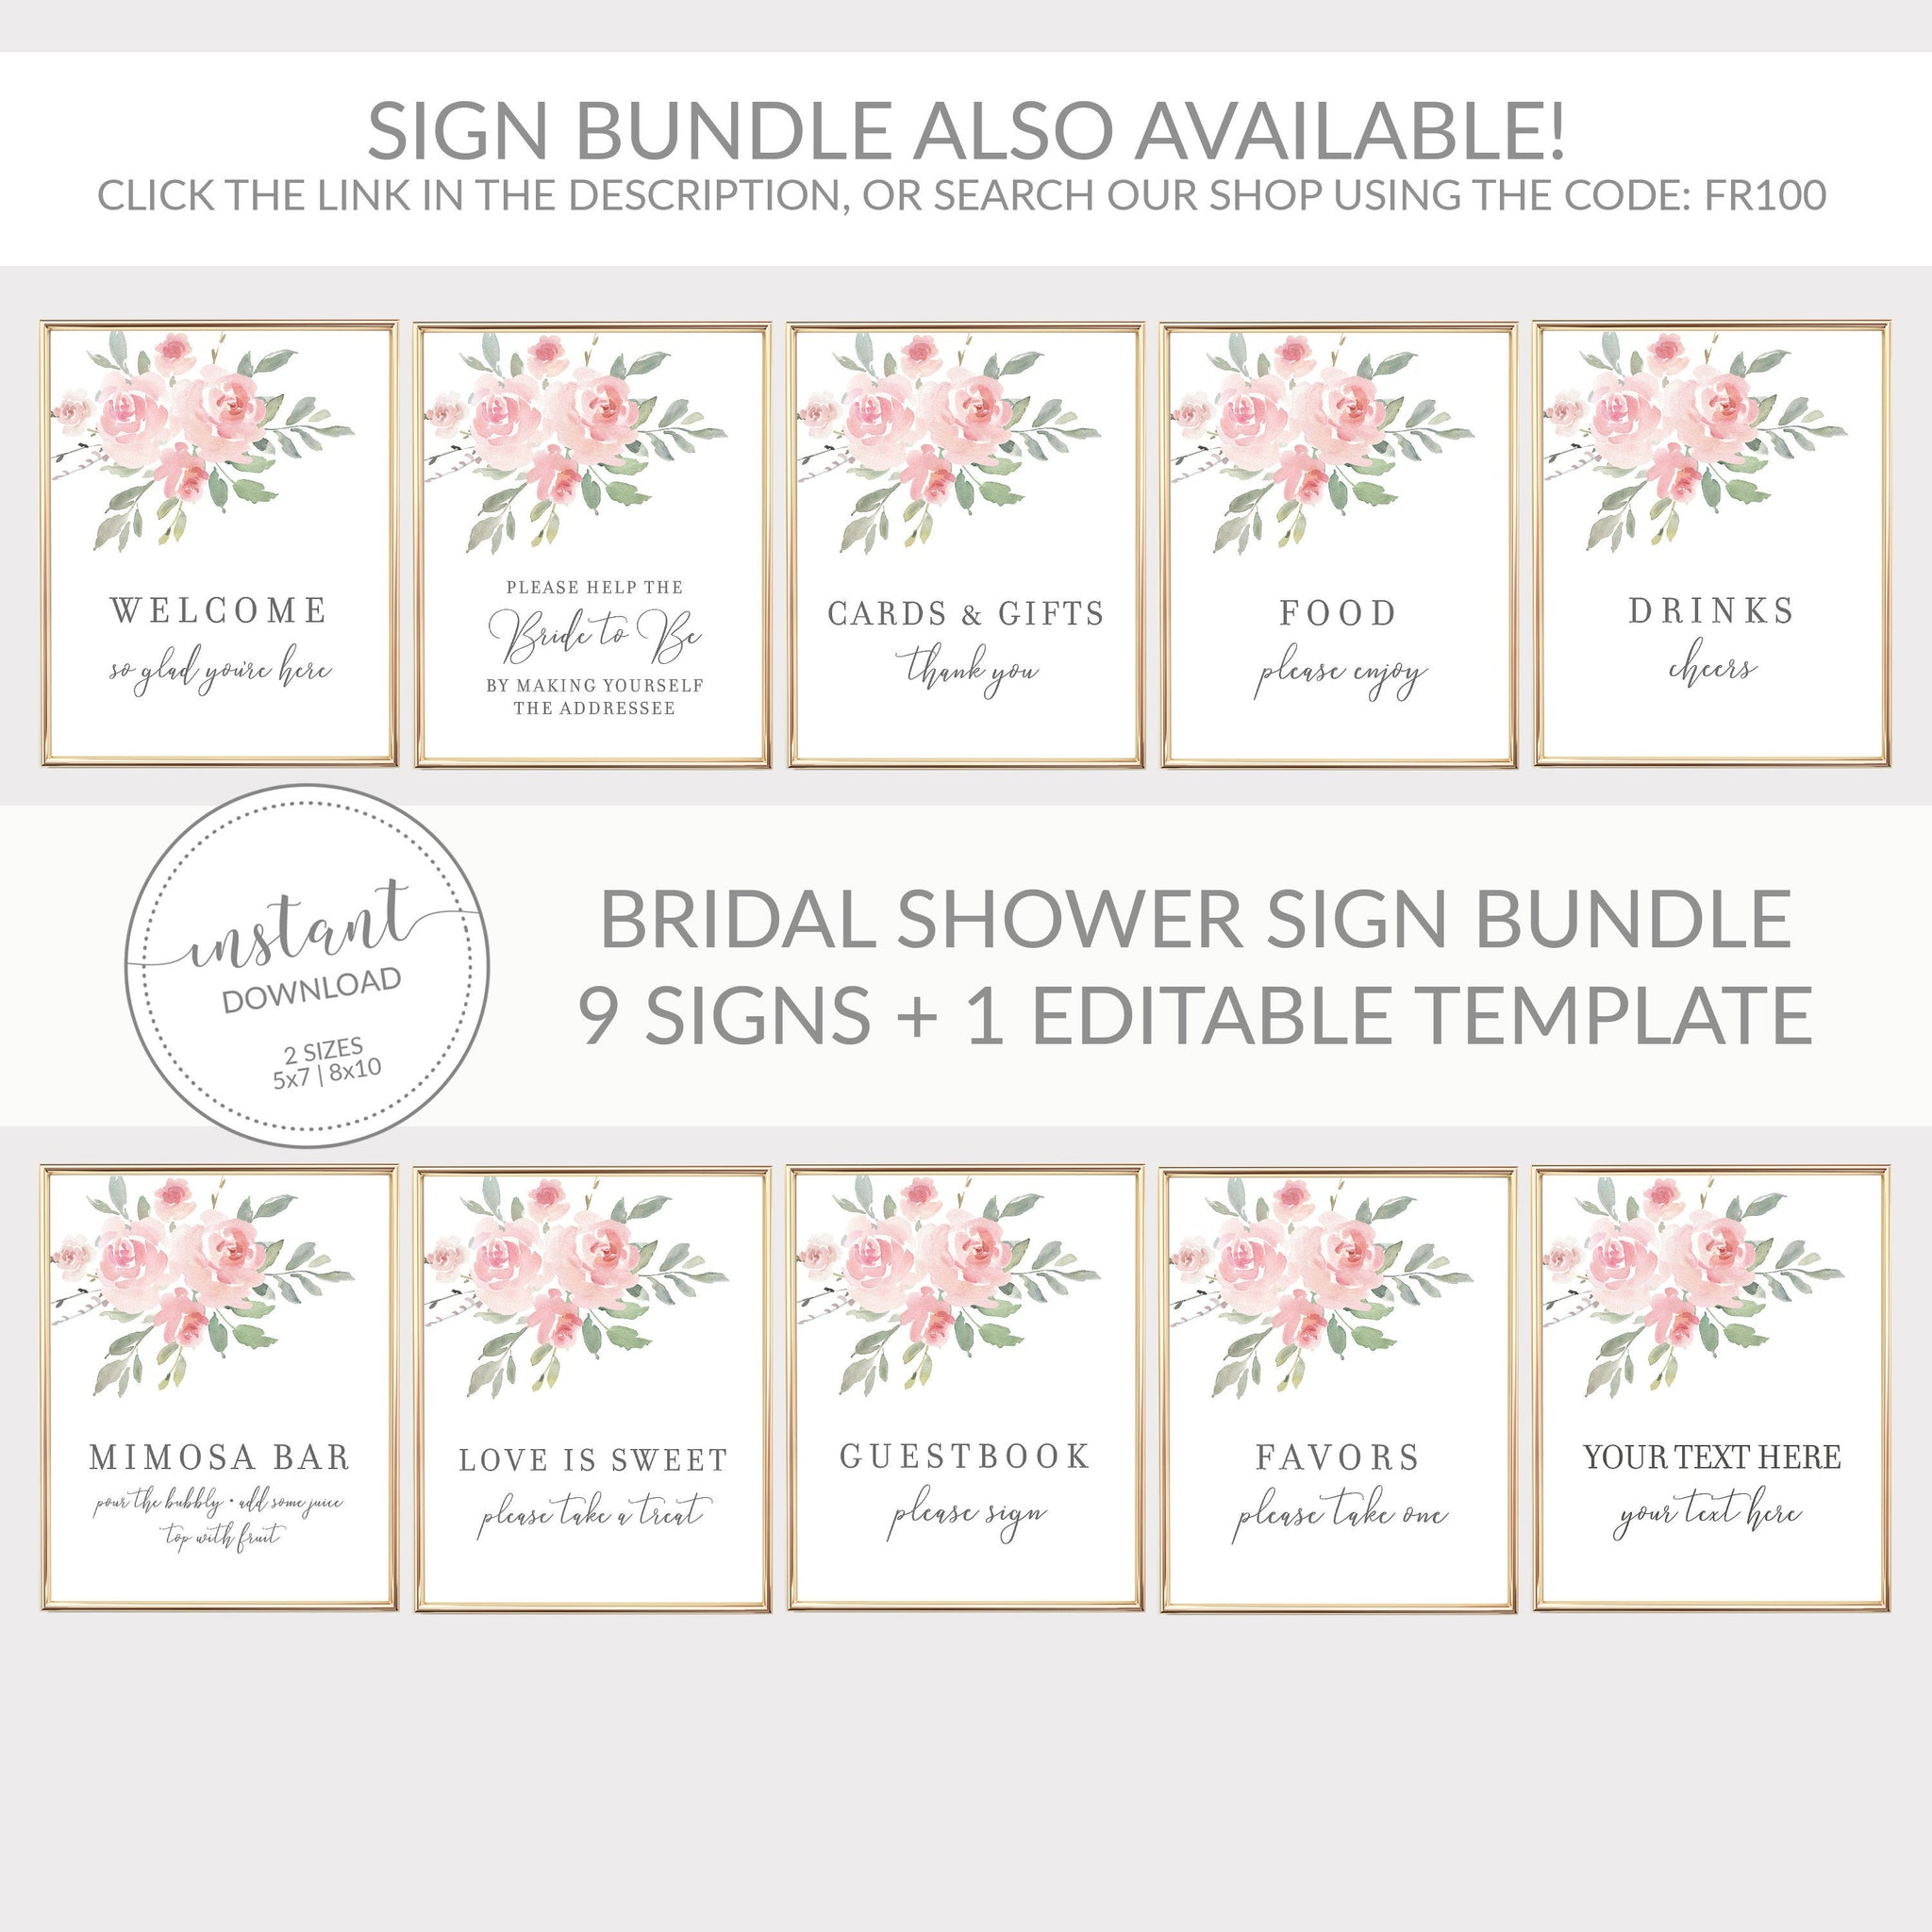 Food Sign Printable, Floral Bridal Shower Decorations, Pink Baby Shower Supplies, DIGITAL DOWNLOAD - FR100 - @PlumPolkaDot